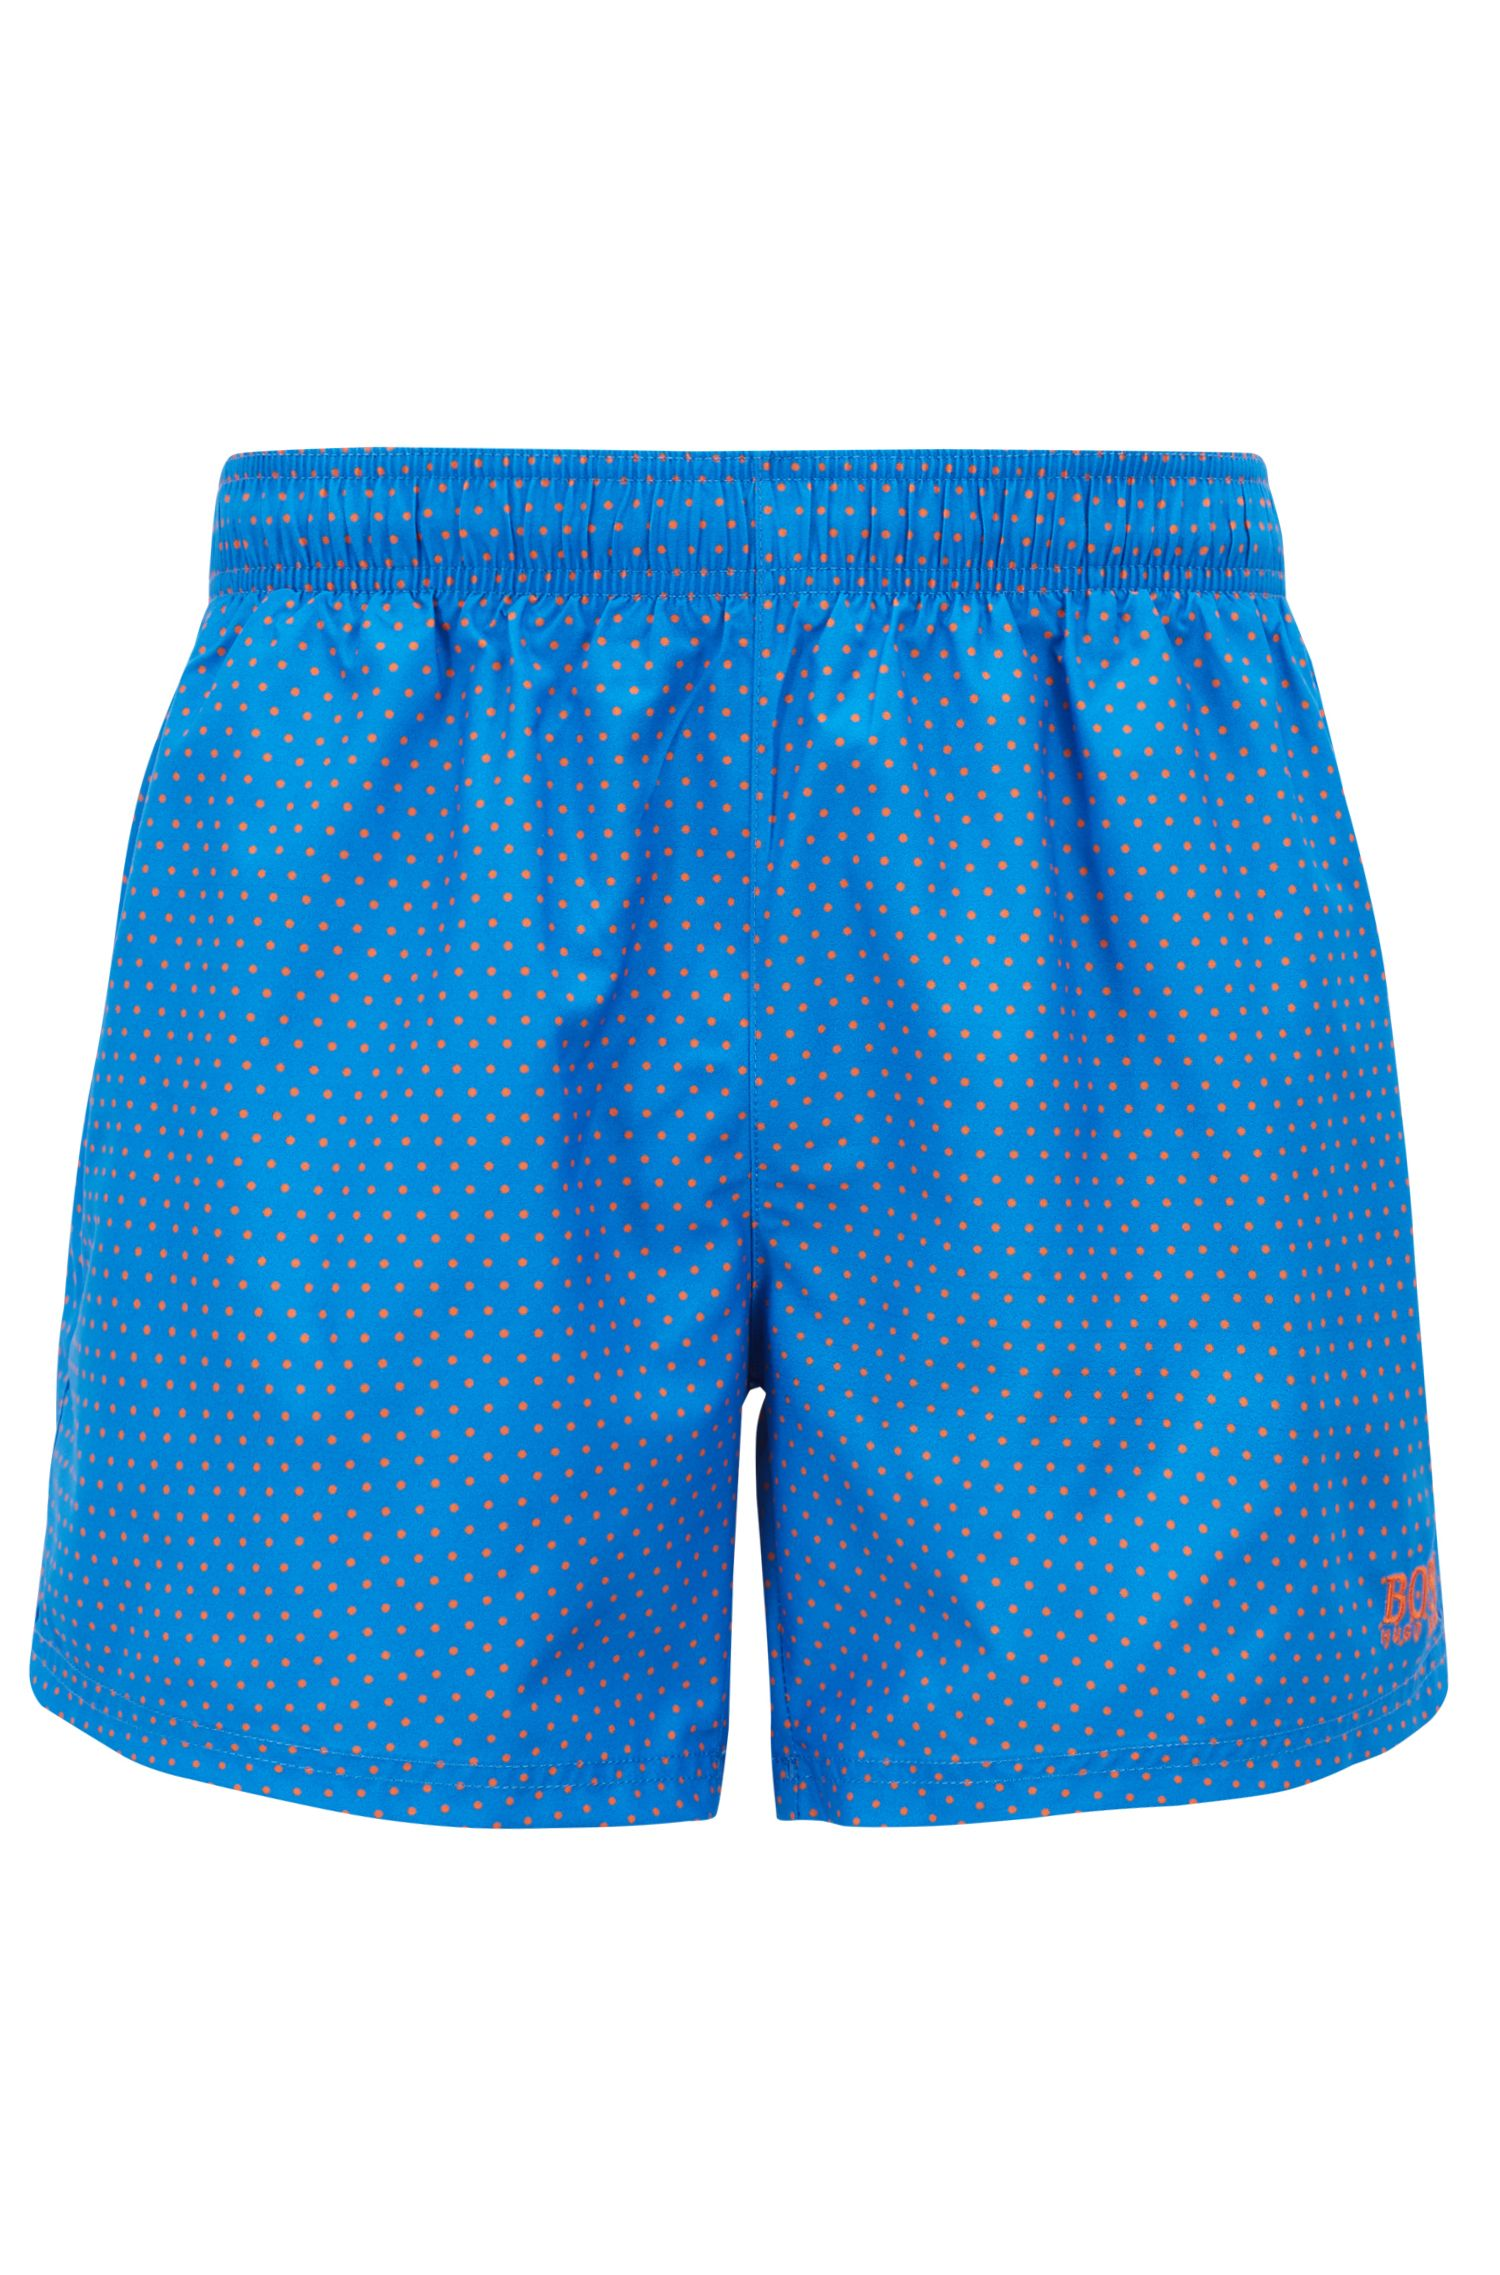 Short-length swim shorts with foil-printed pattern, Blue